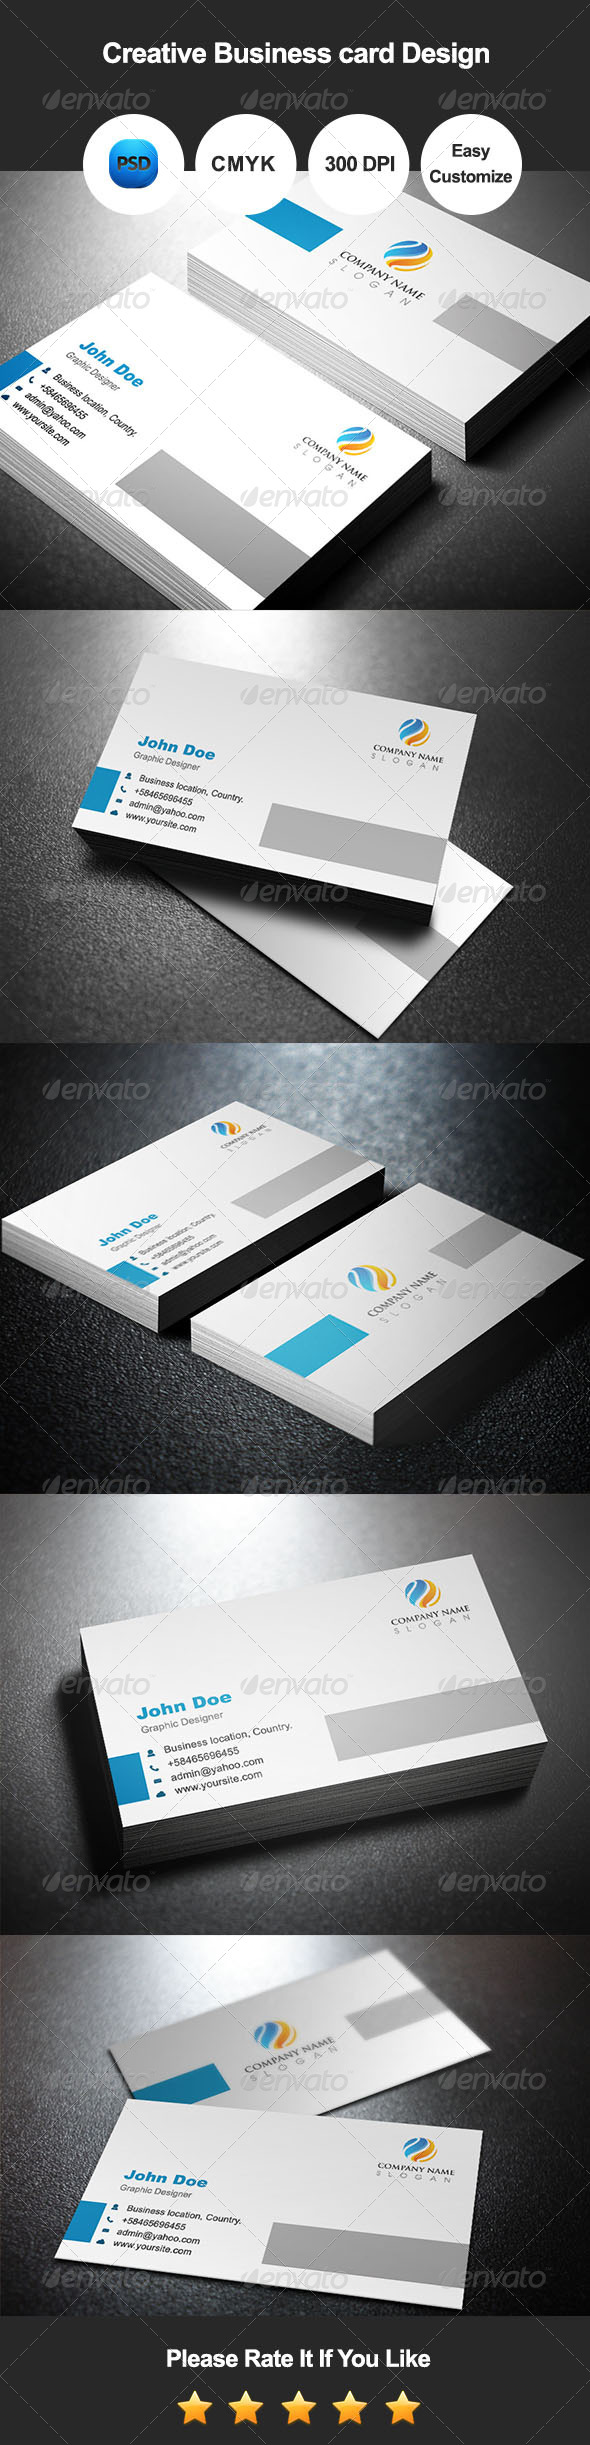 GraphicRiver Creative Business Card Design 7490717